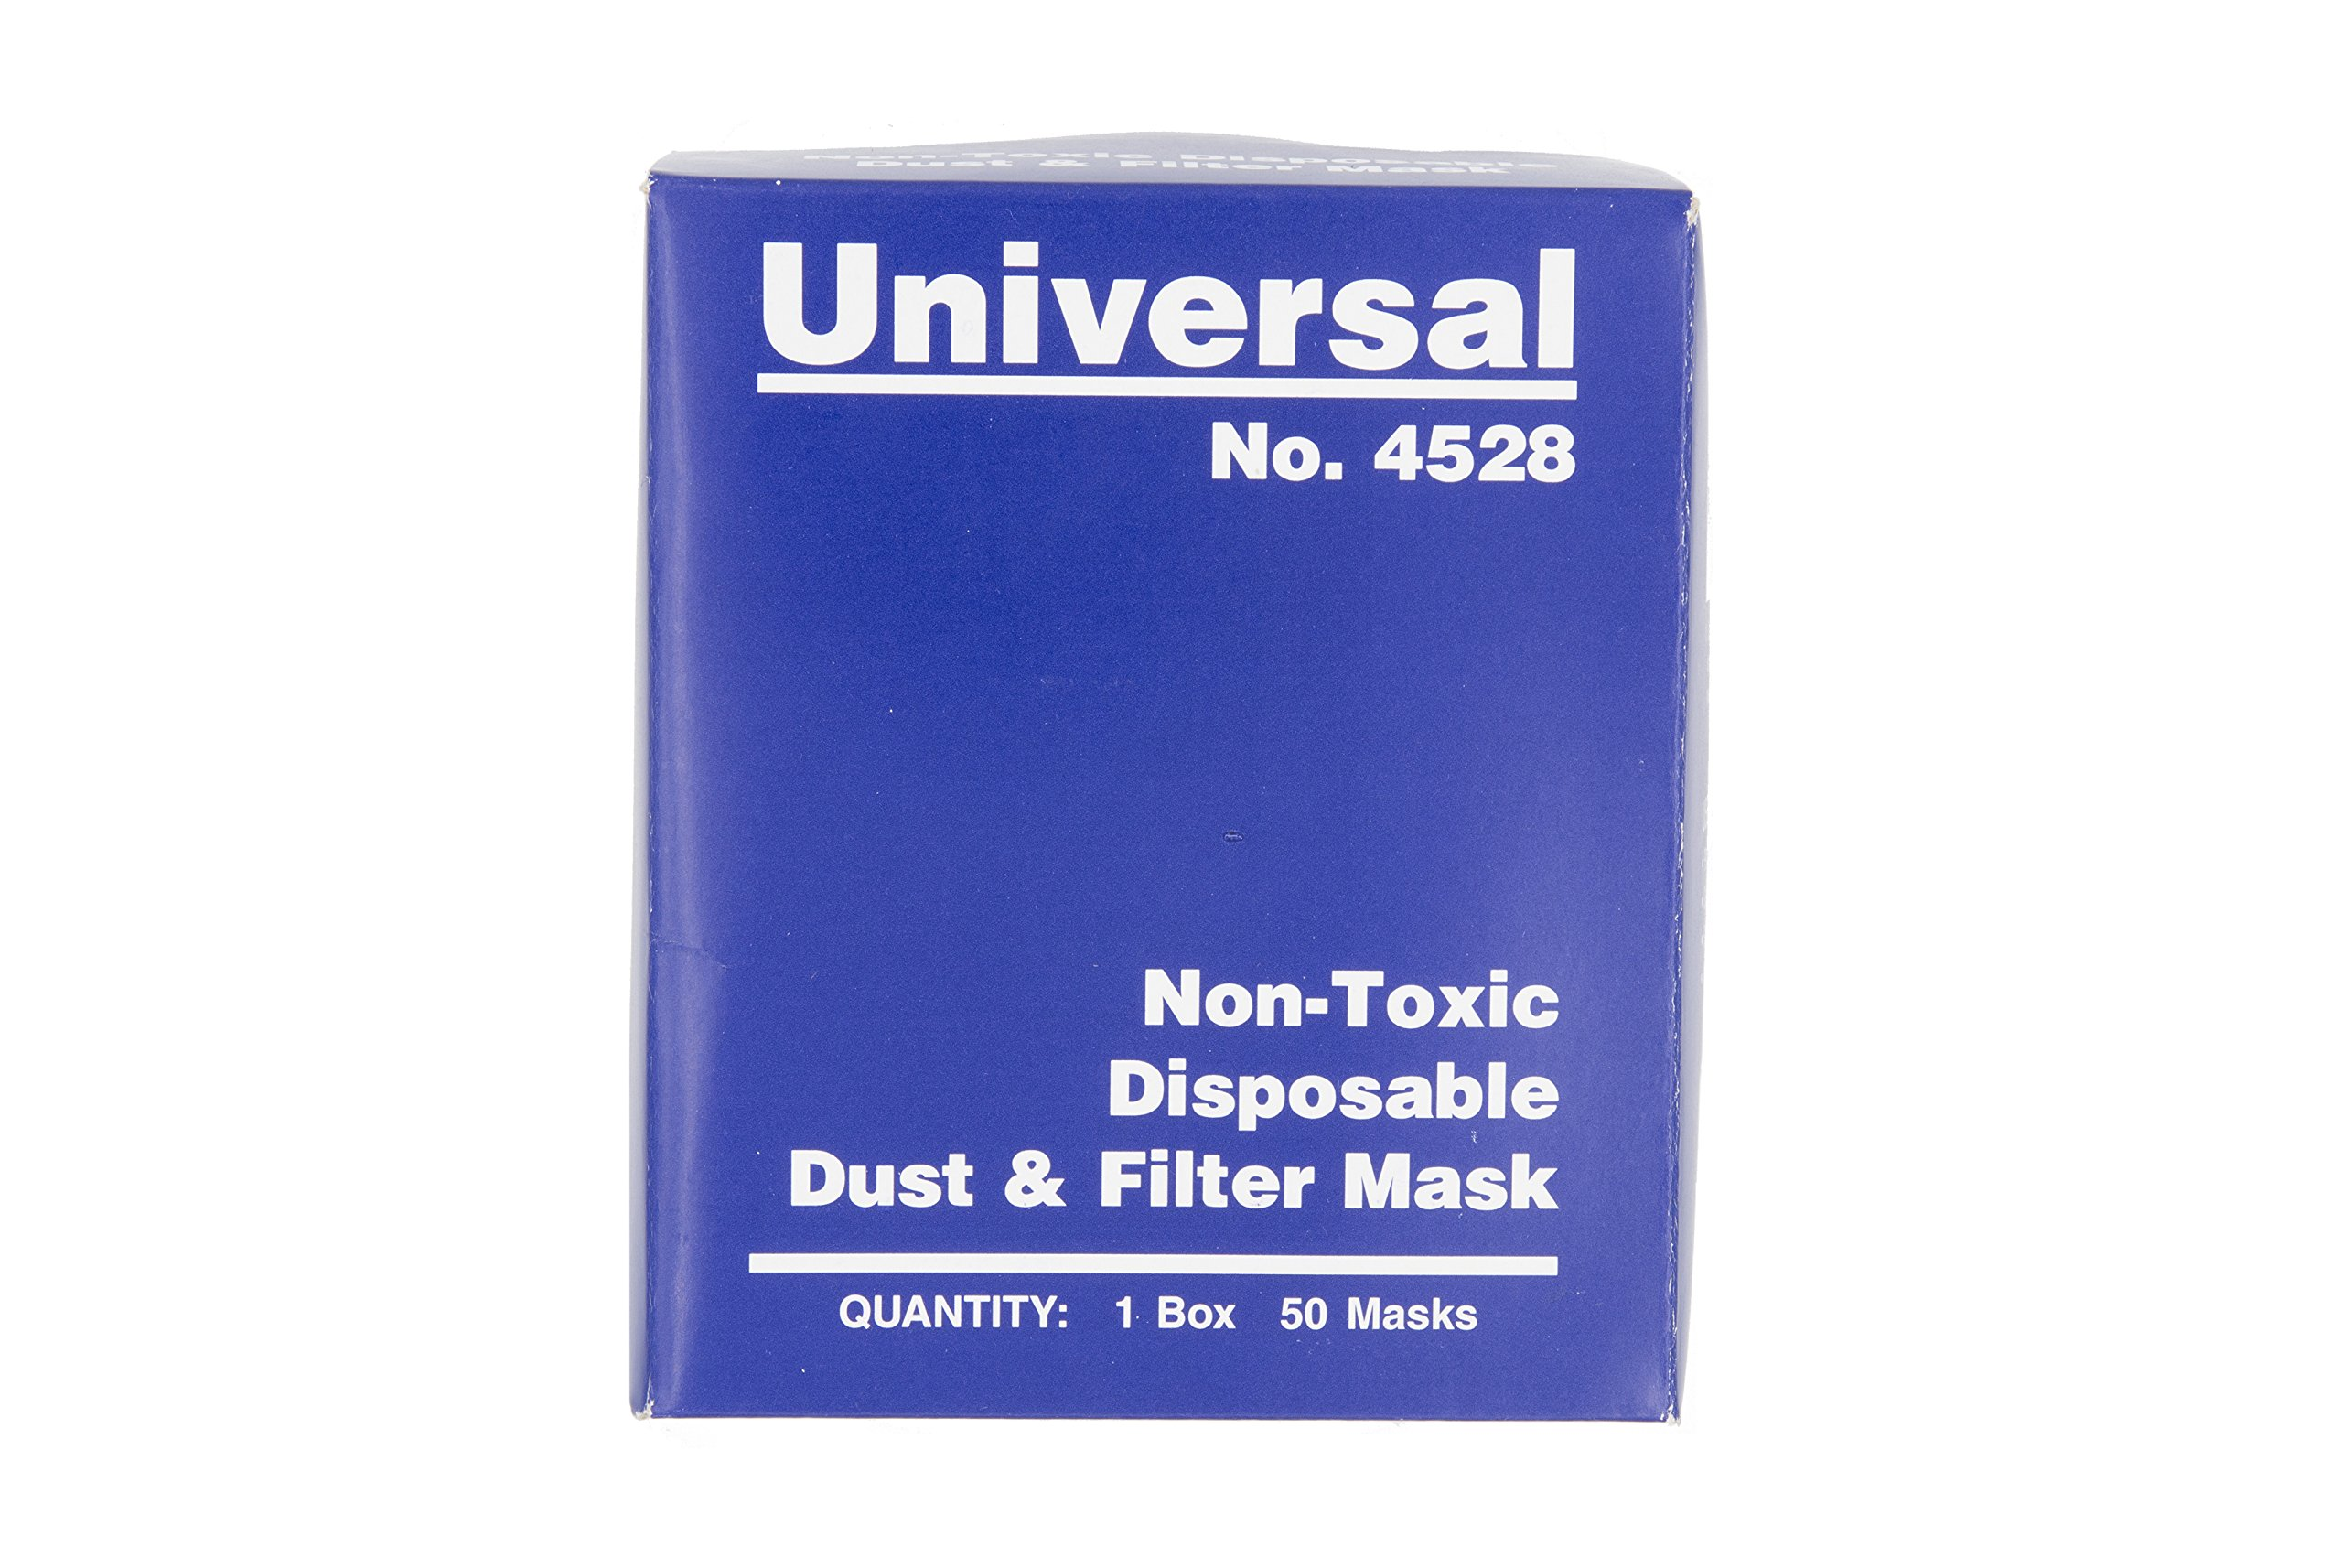 Universal 4528 Non-Toxic Disposable Dust & Filter Safety Masks 4